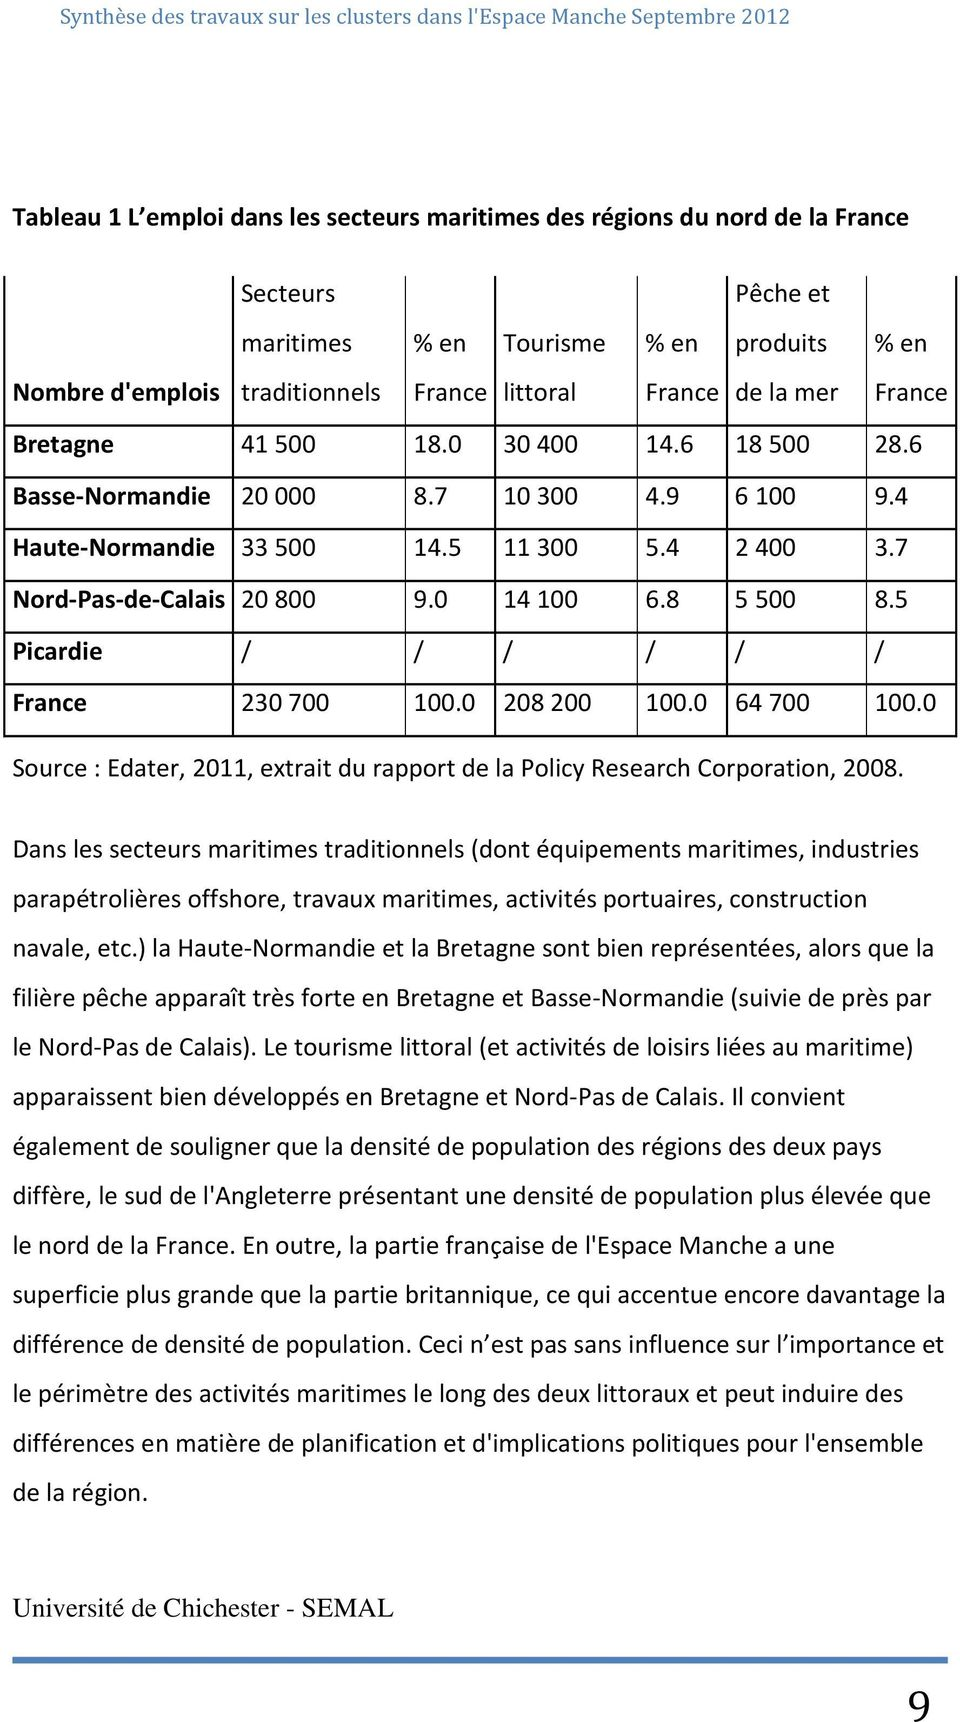 5 Picardie / / / / / / France 230700 100.0 208200 100.0 64700 100.0 Source : Edater, 2011, extrait du rapport de la Policy Research Corporation, 2008.